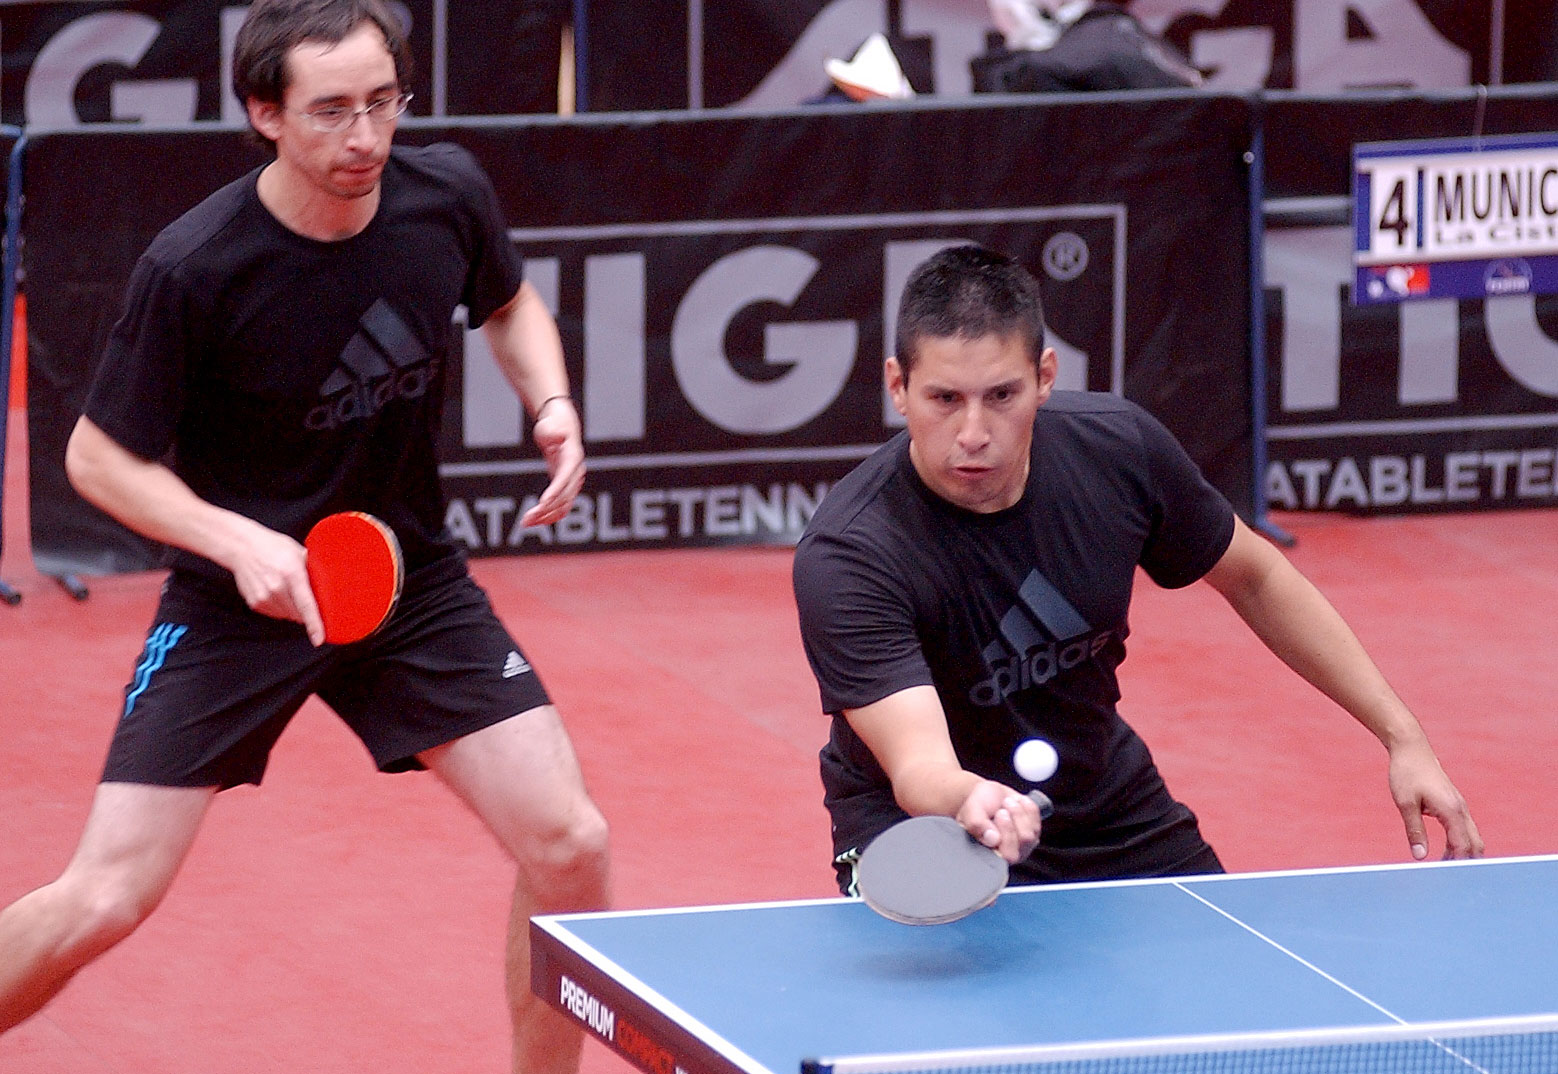 NIKKEI TEAM SE IMPONE A RC SAN MIGUEL